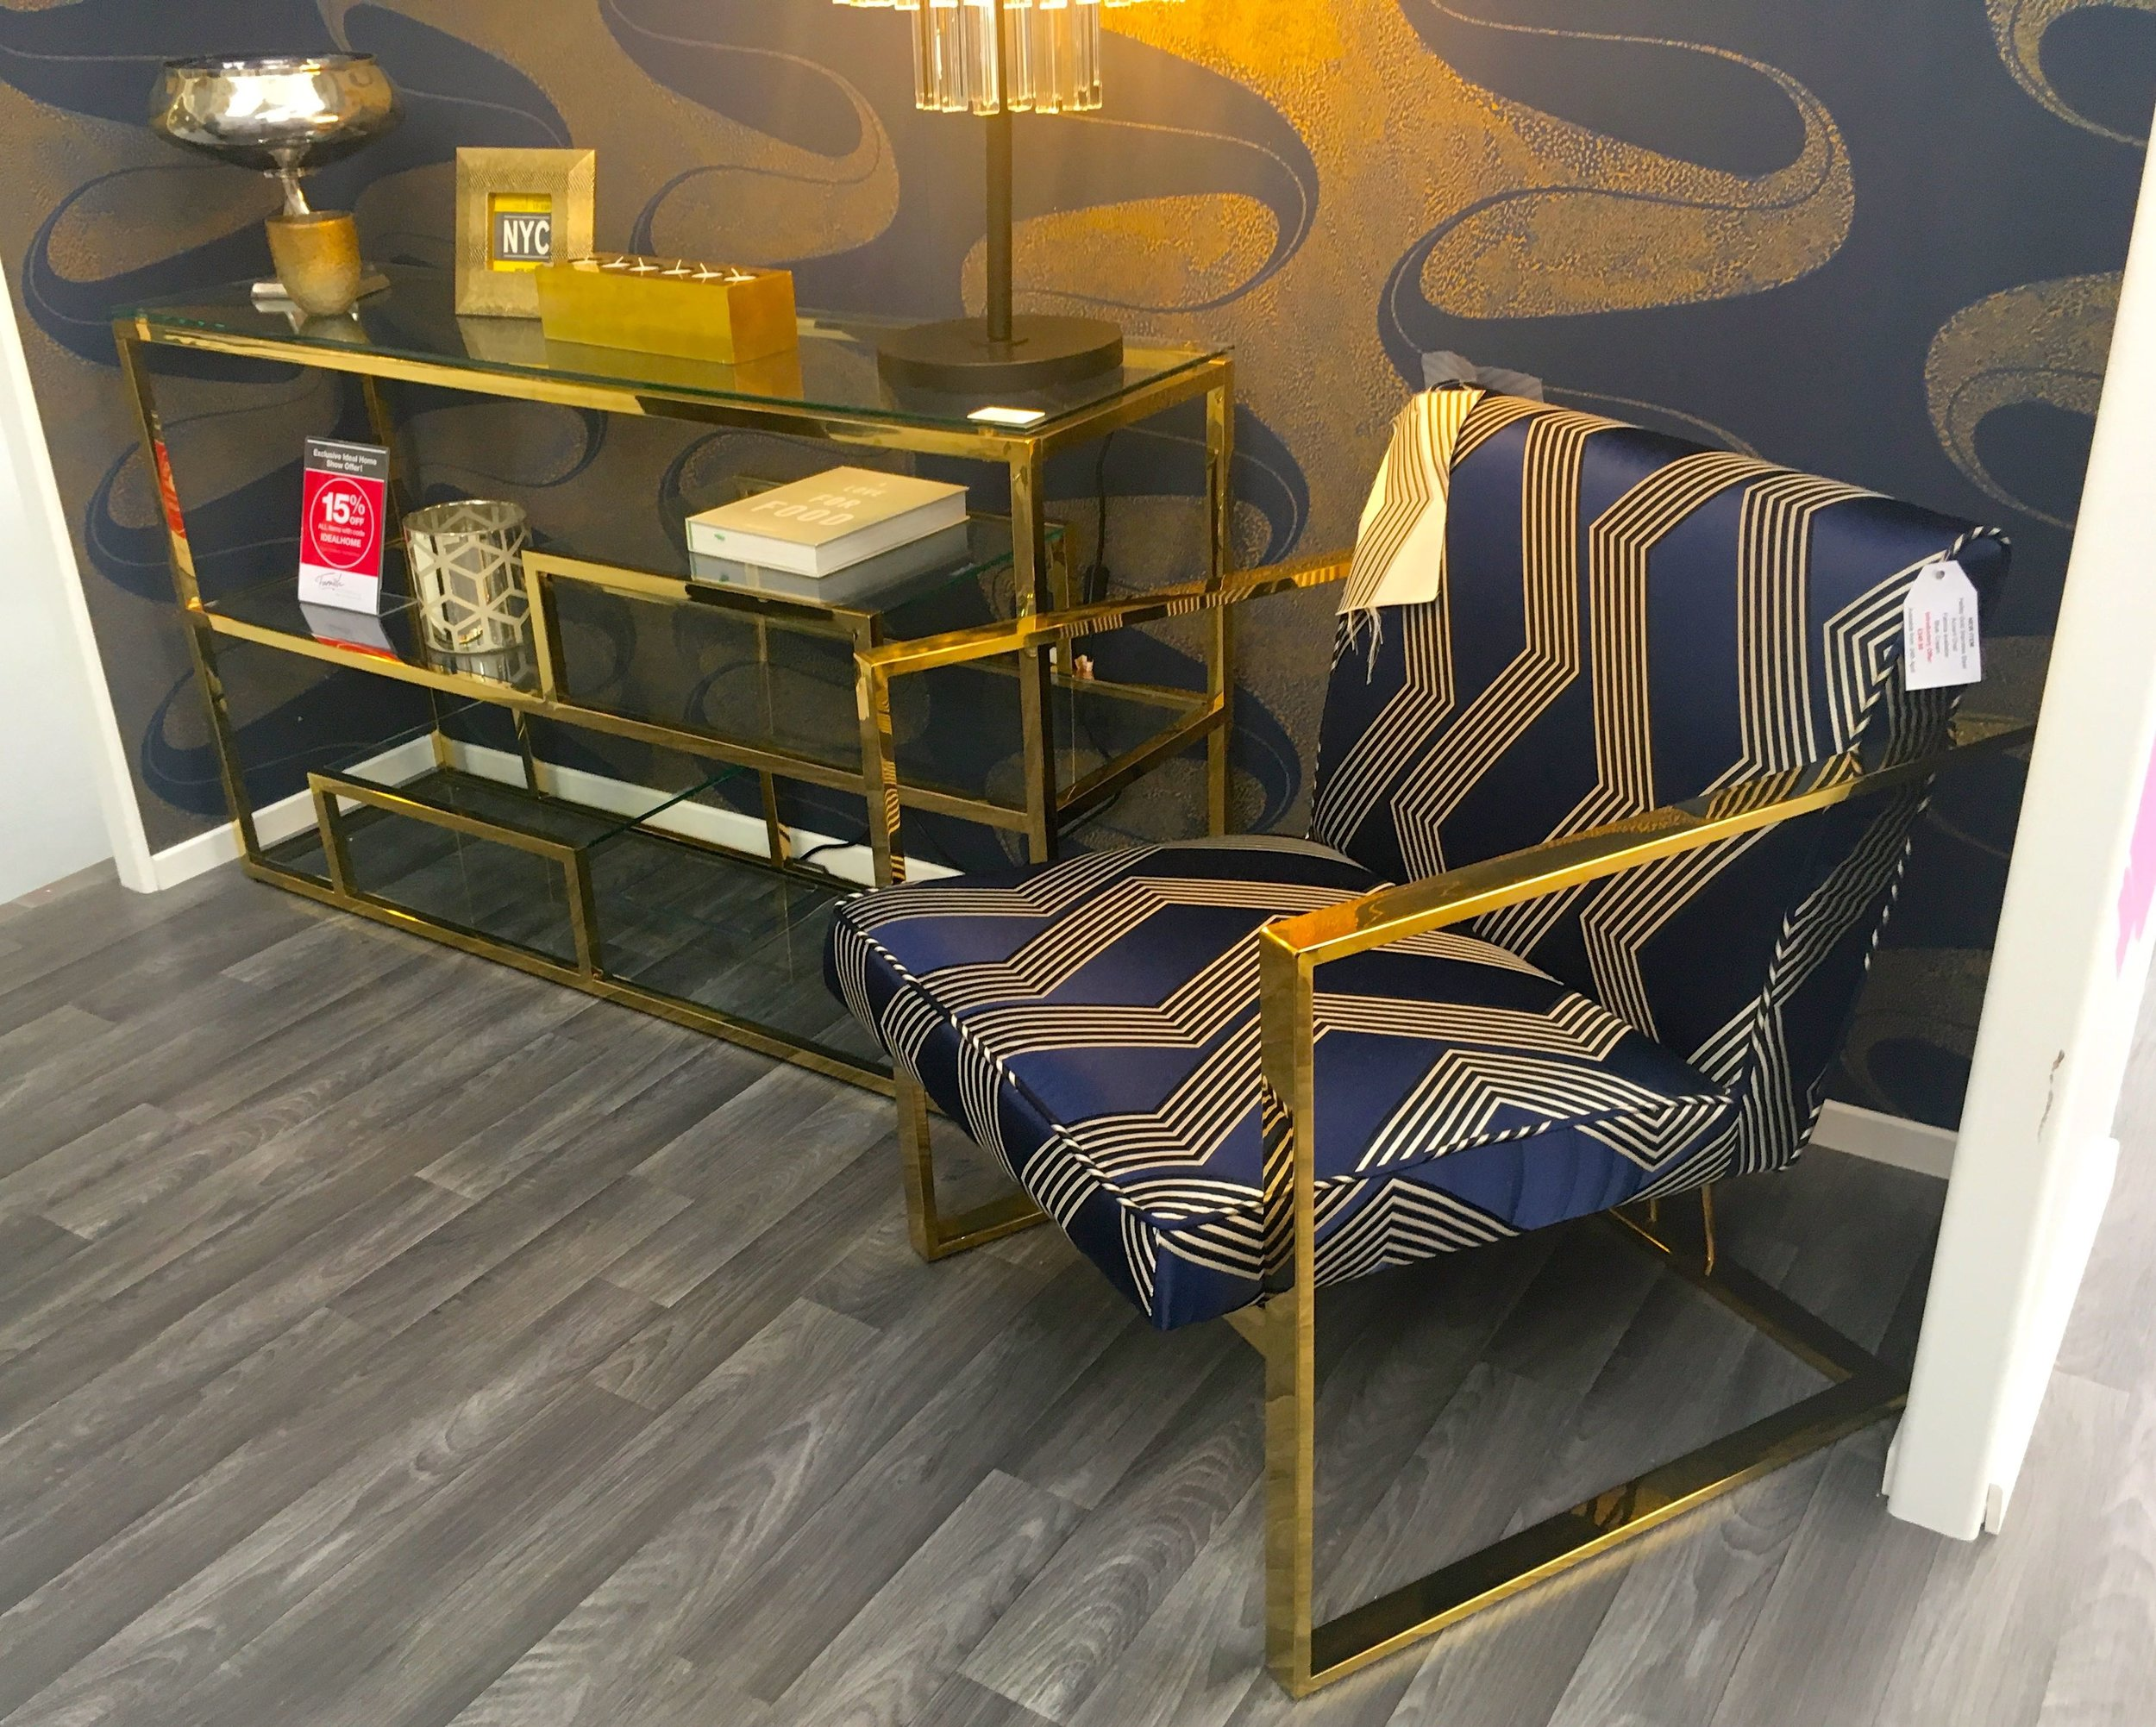 Brass and bold patterns on the Furnish your home stand at the Ideal Home Show